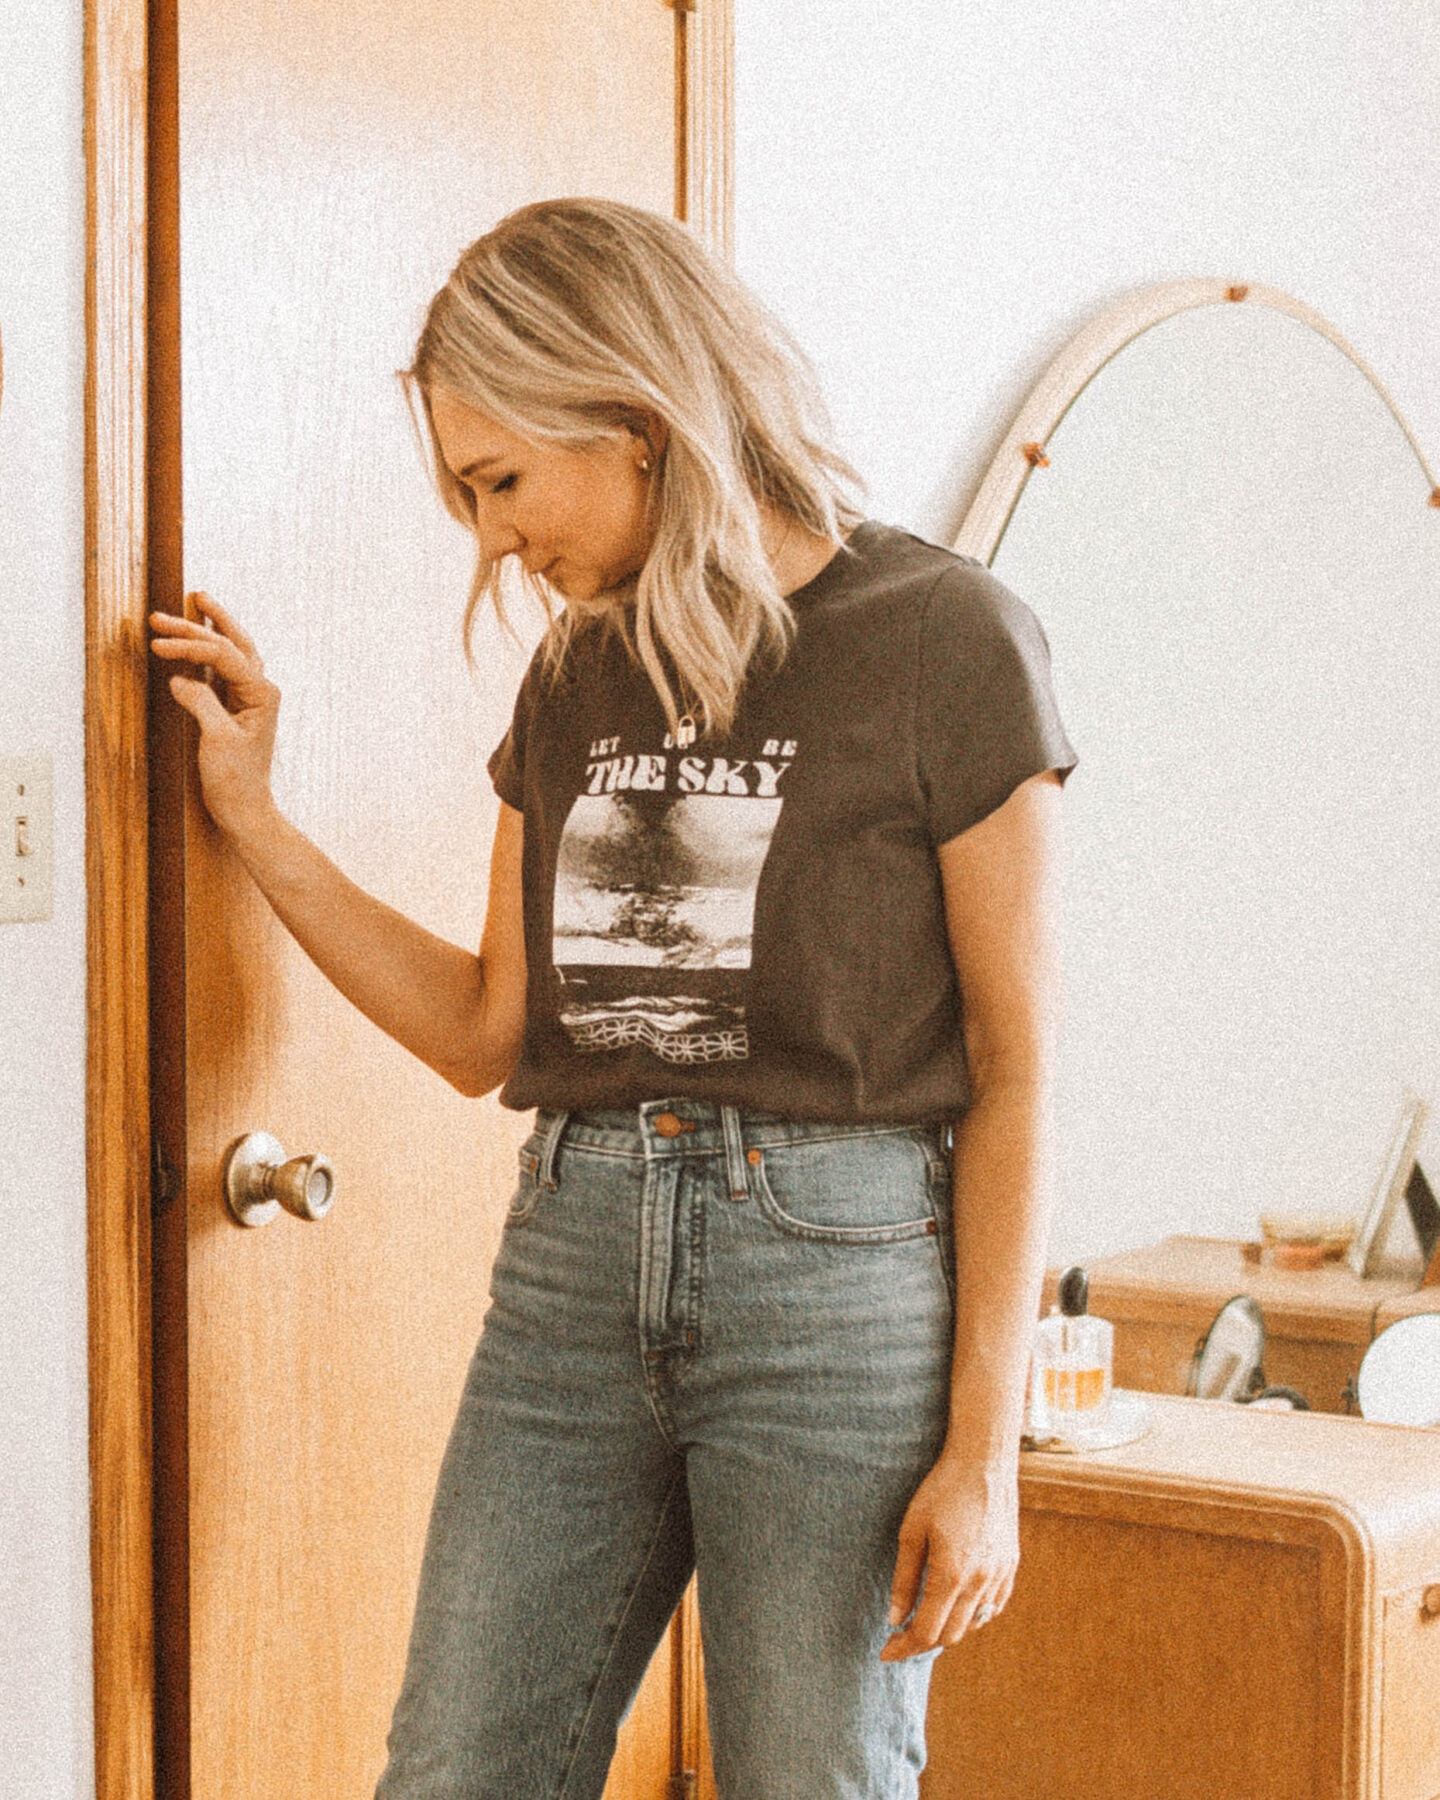 New Spring pieces from  Madewell & J.Crew: Soft, Easy Basics, graphic tee